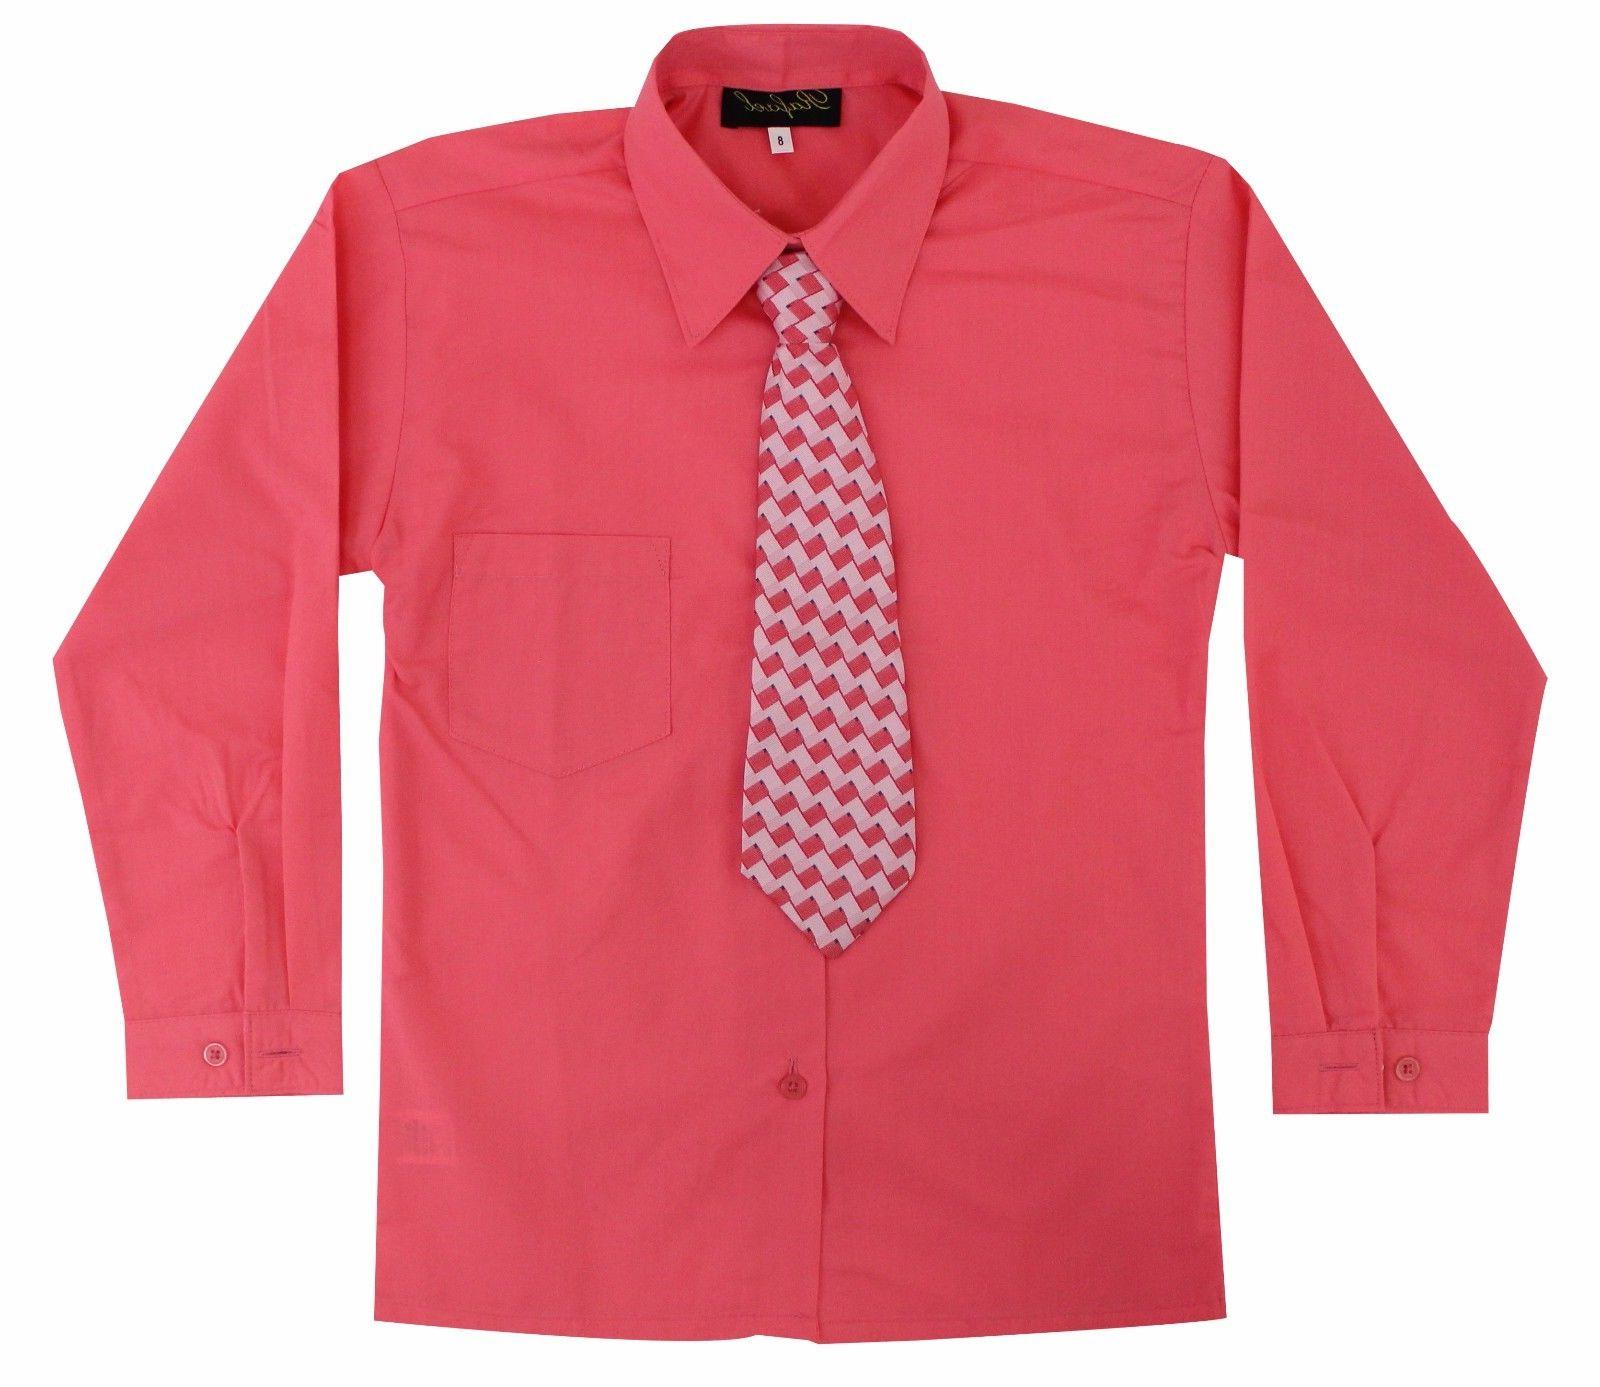 Kids Sleeve Tie Set Size to